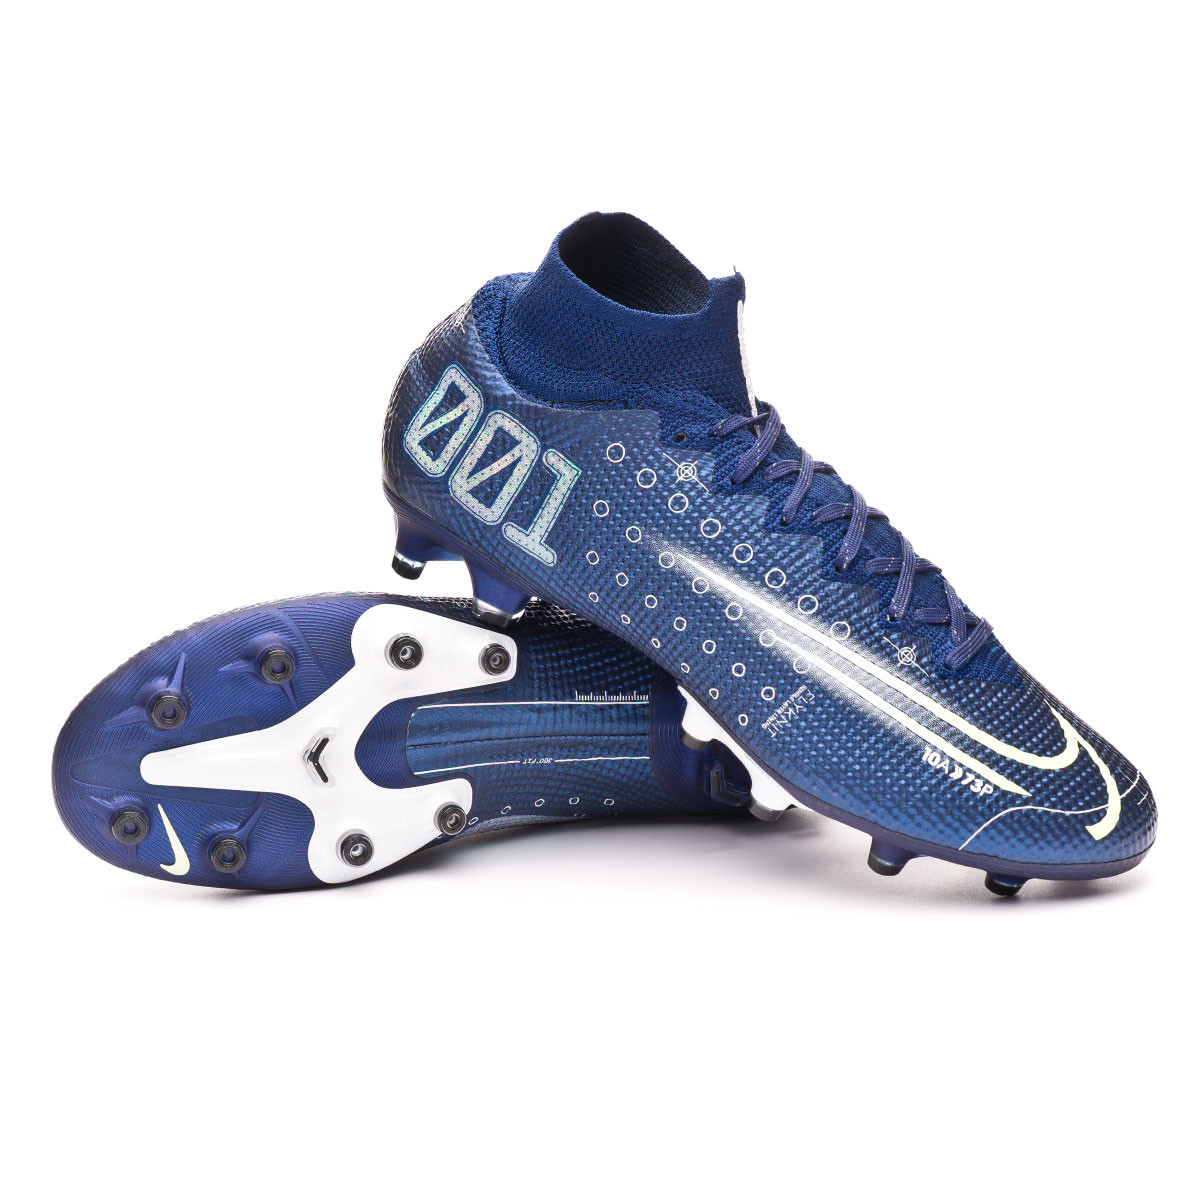 Chaussure de foot Nike Mercurial Superfly VII Elite MDS AG Pro